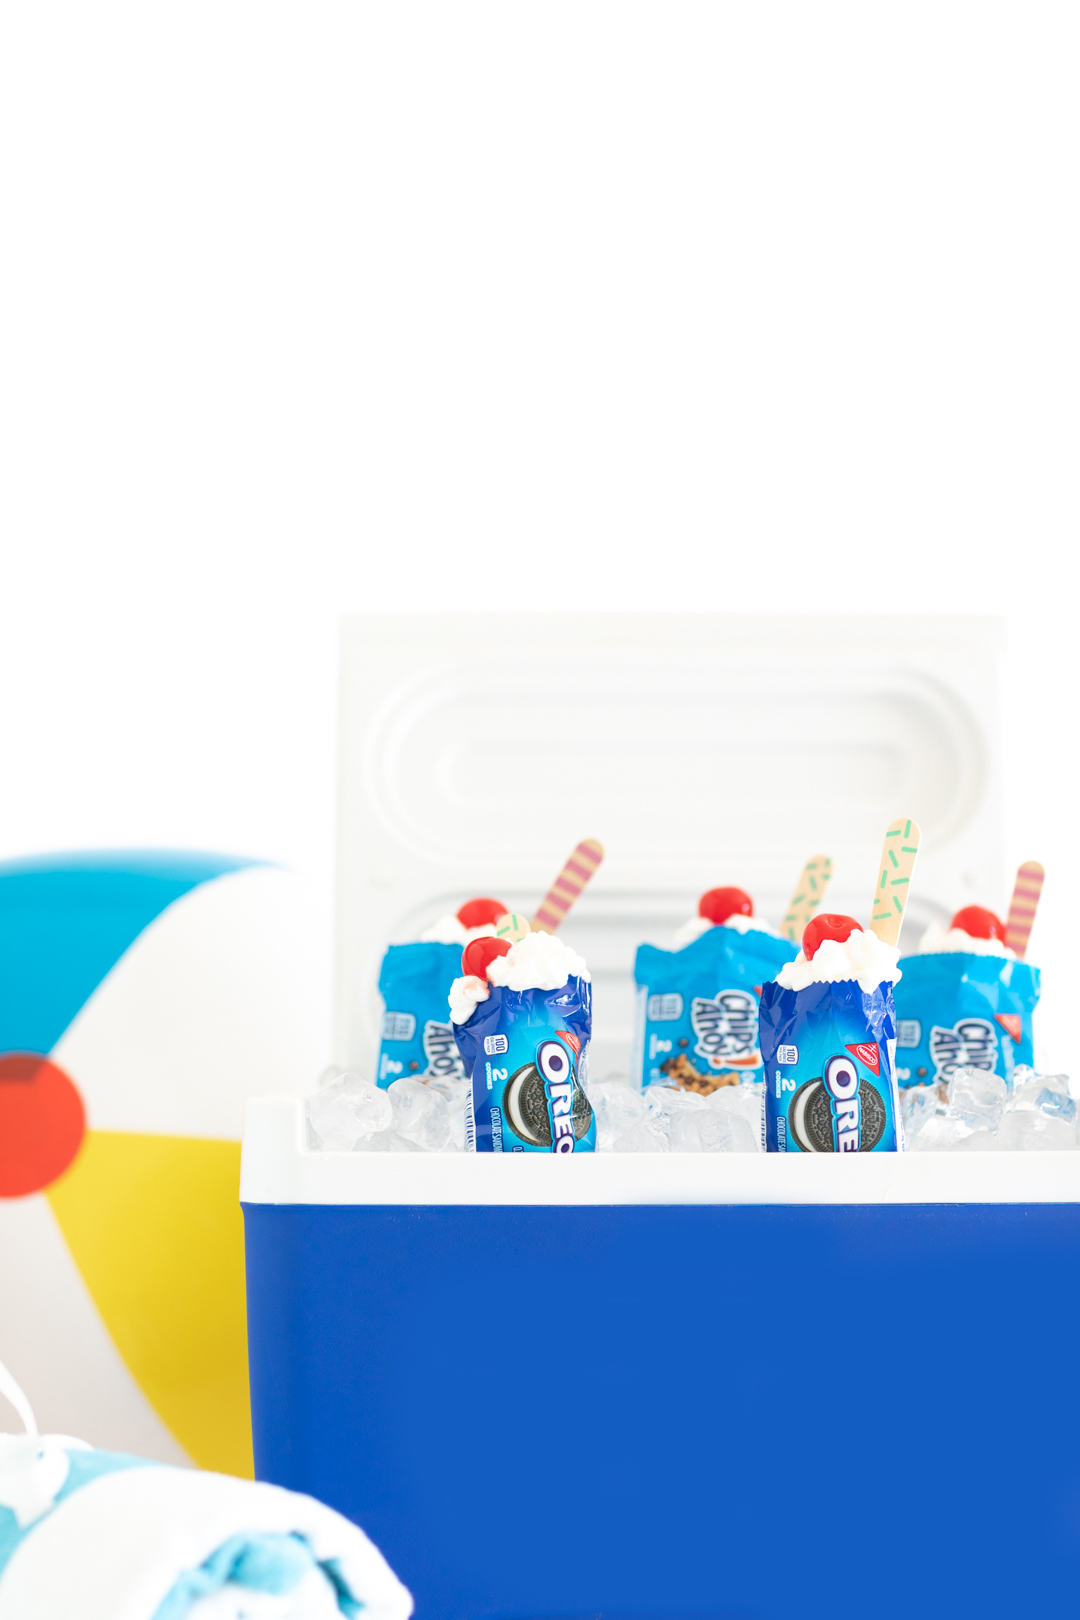 walking desserts served in cookie packages out of a cooler. summer treat.